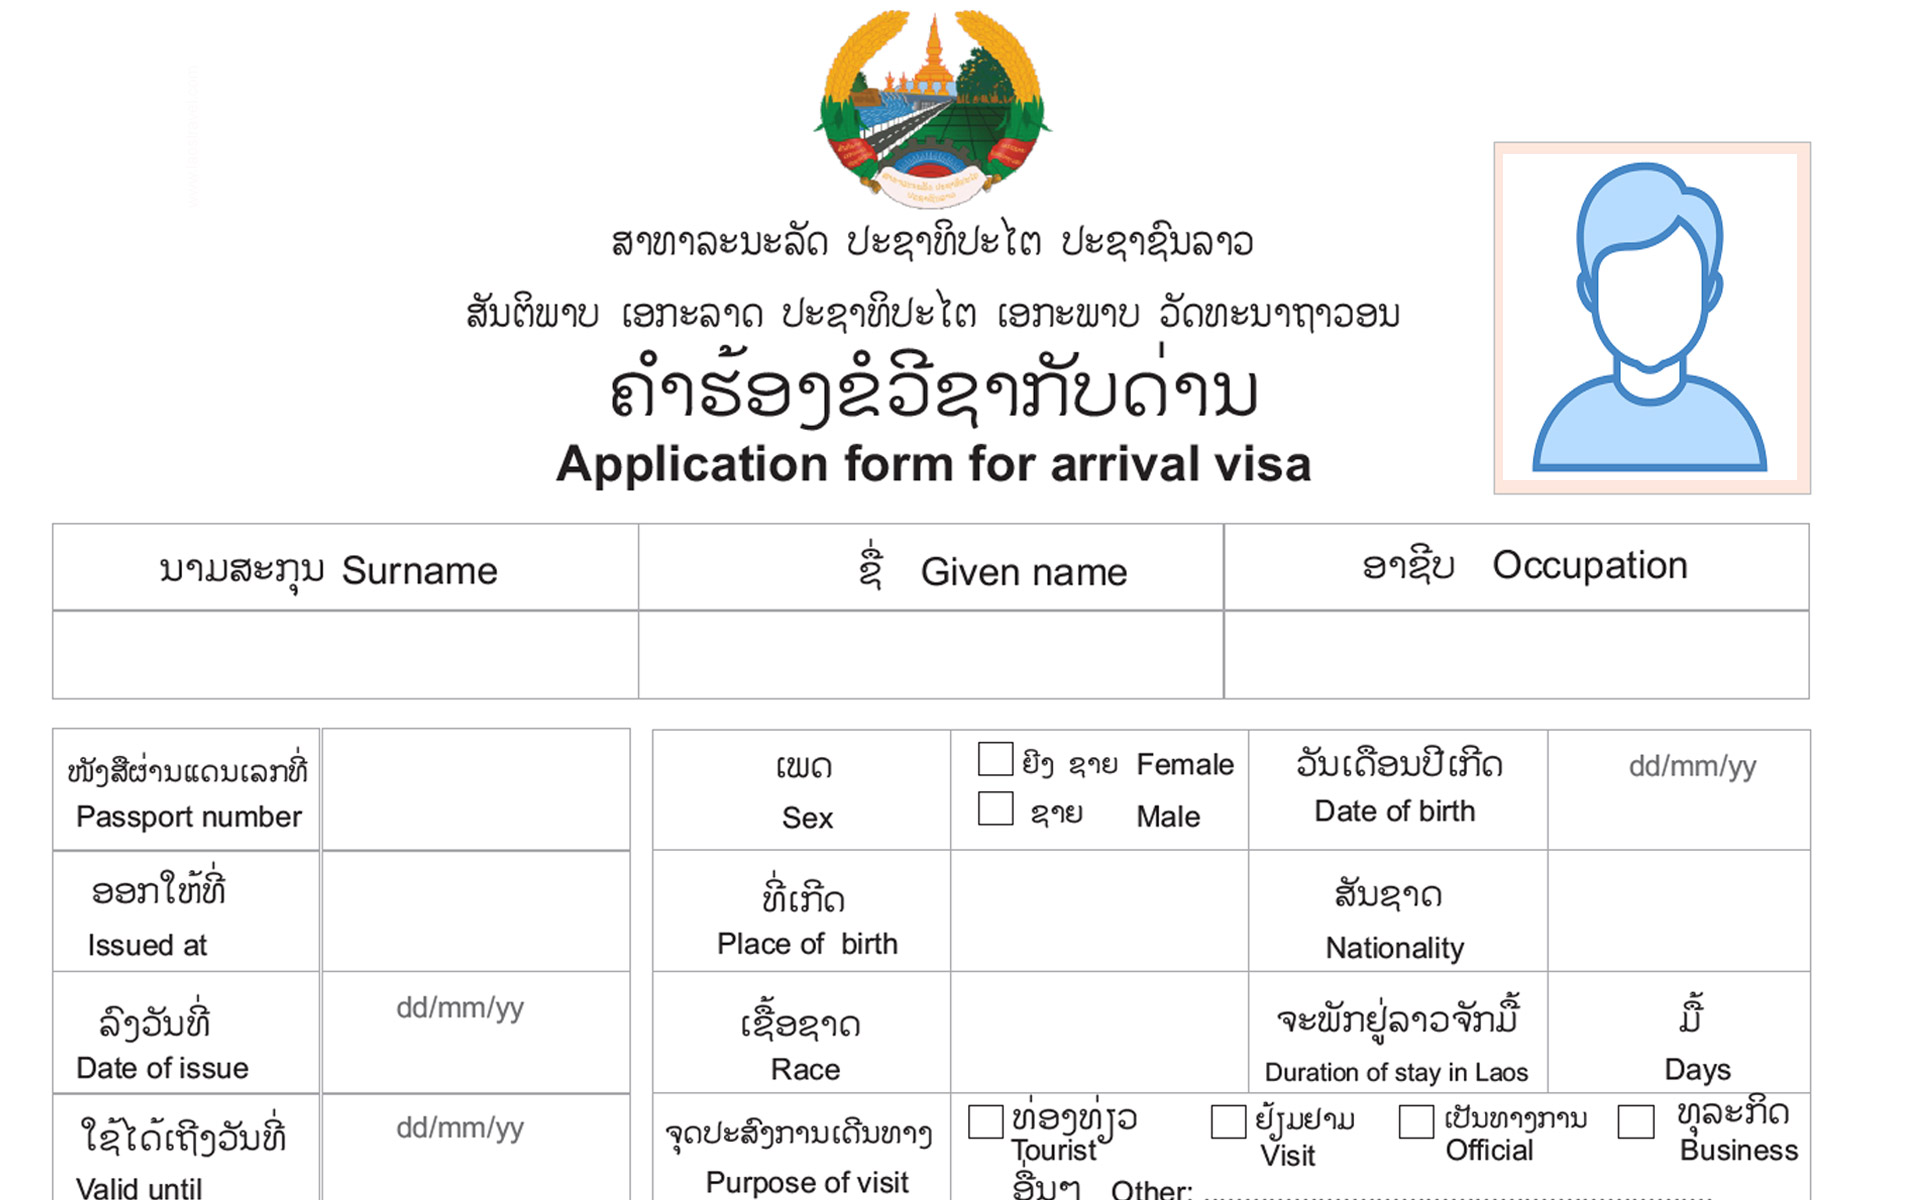 visa to Lao - Application form for arrival visa to Laos